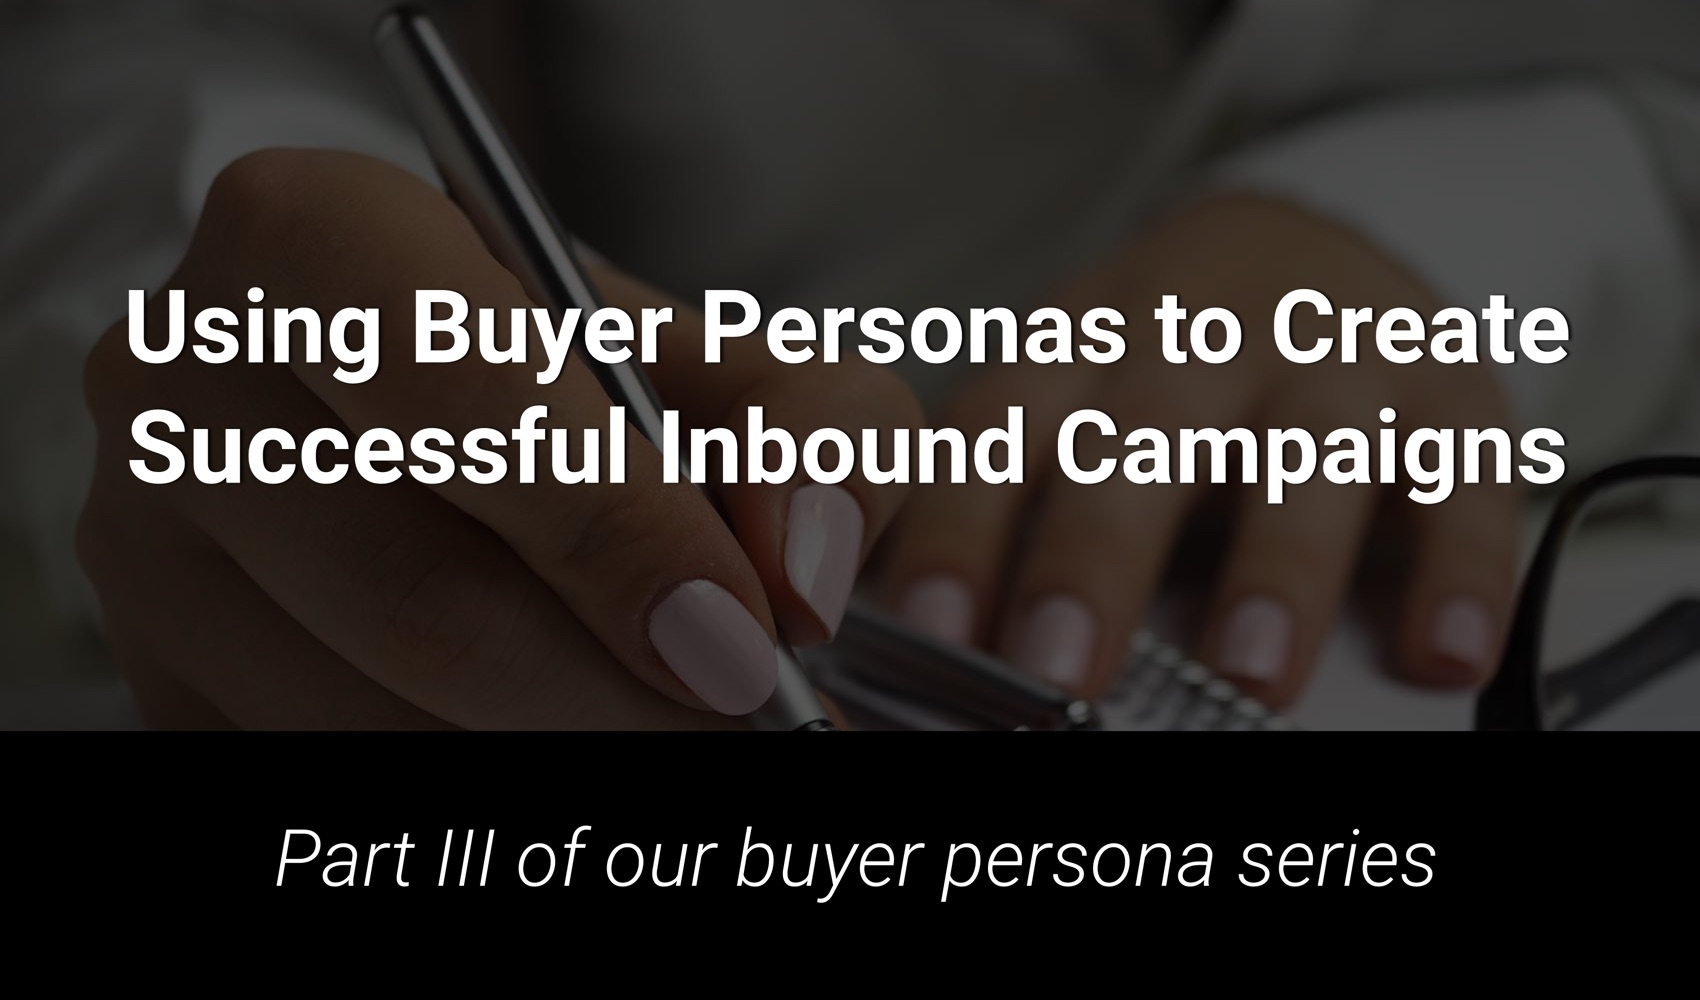 Using Buyer Personas to Create Successful Inbound Marketing Campaigns